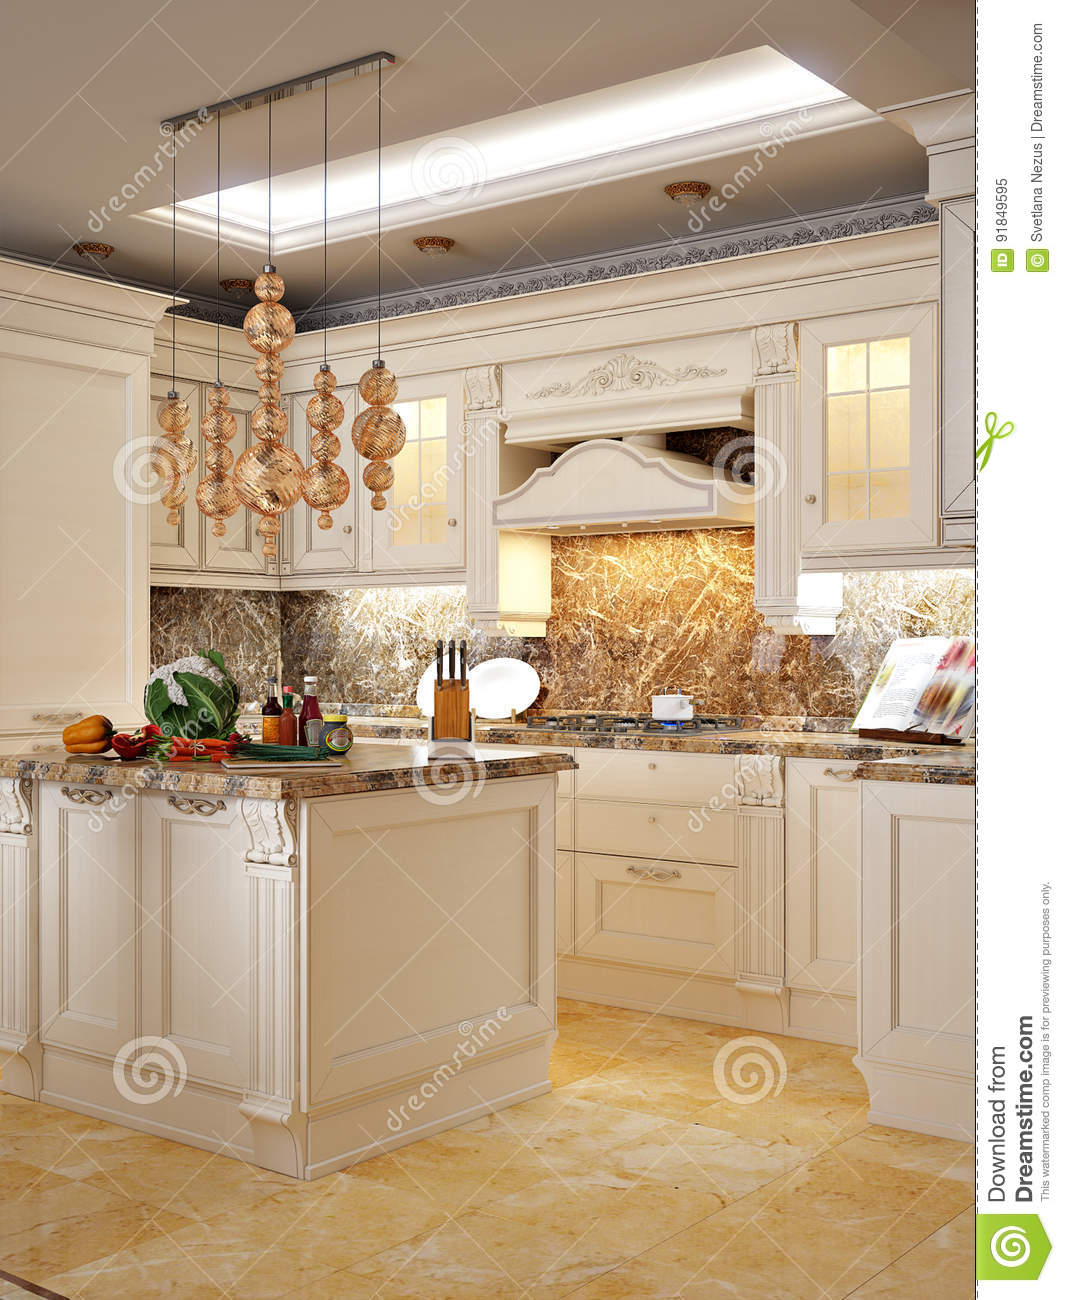 Orange Kitchen Room With White Cabinets Stock Image: Luxurious Classic Baroque Kitchen And Dining Room Stock